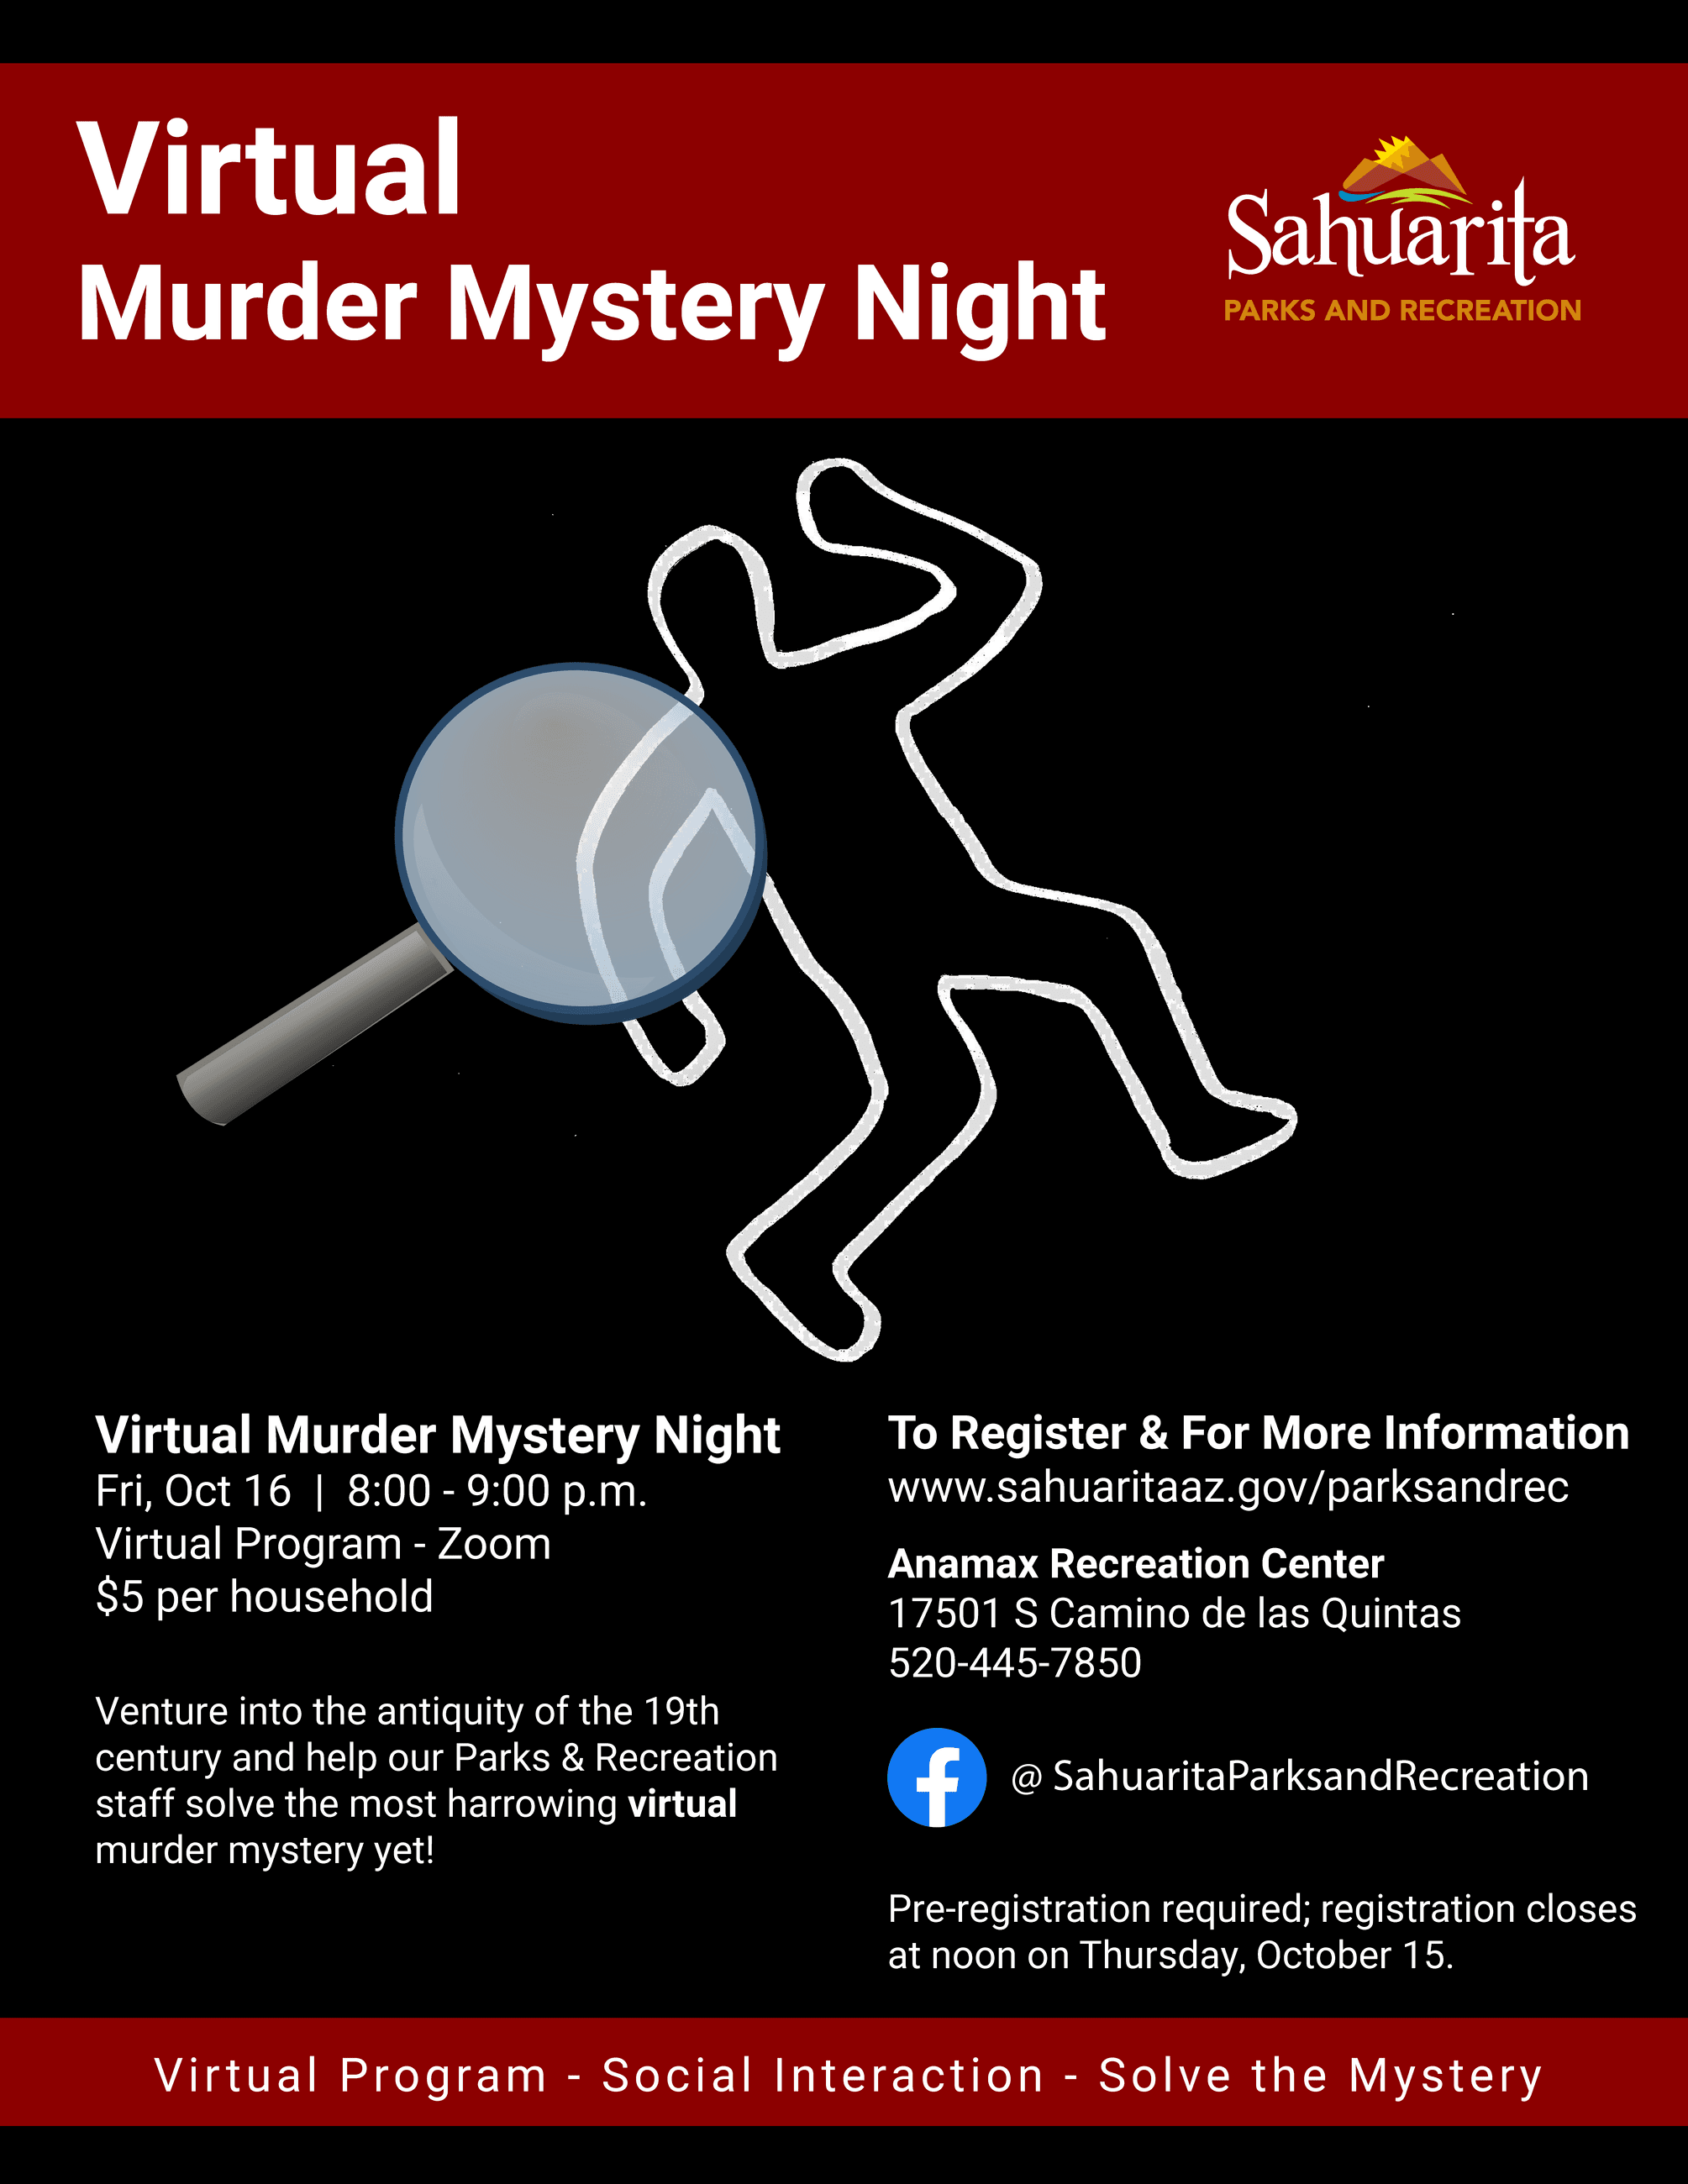 Virtual Murder Mystery Night on October sixteenth from eight to nine p.m. on the Zoom platform.